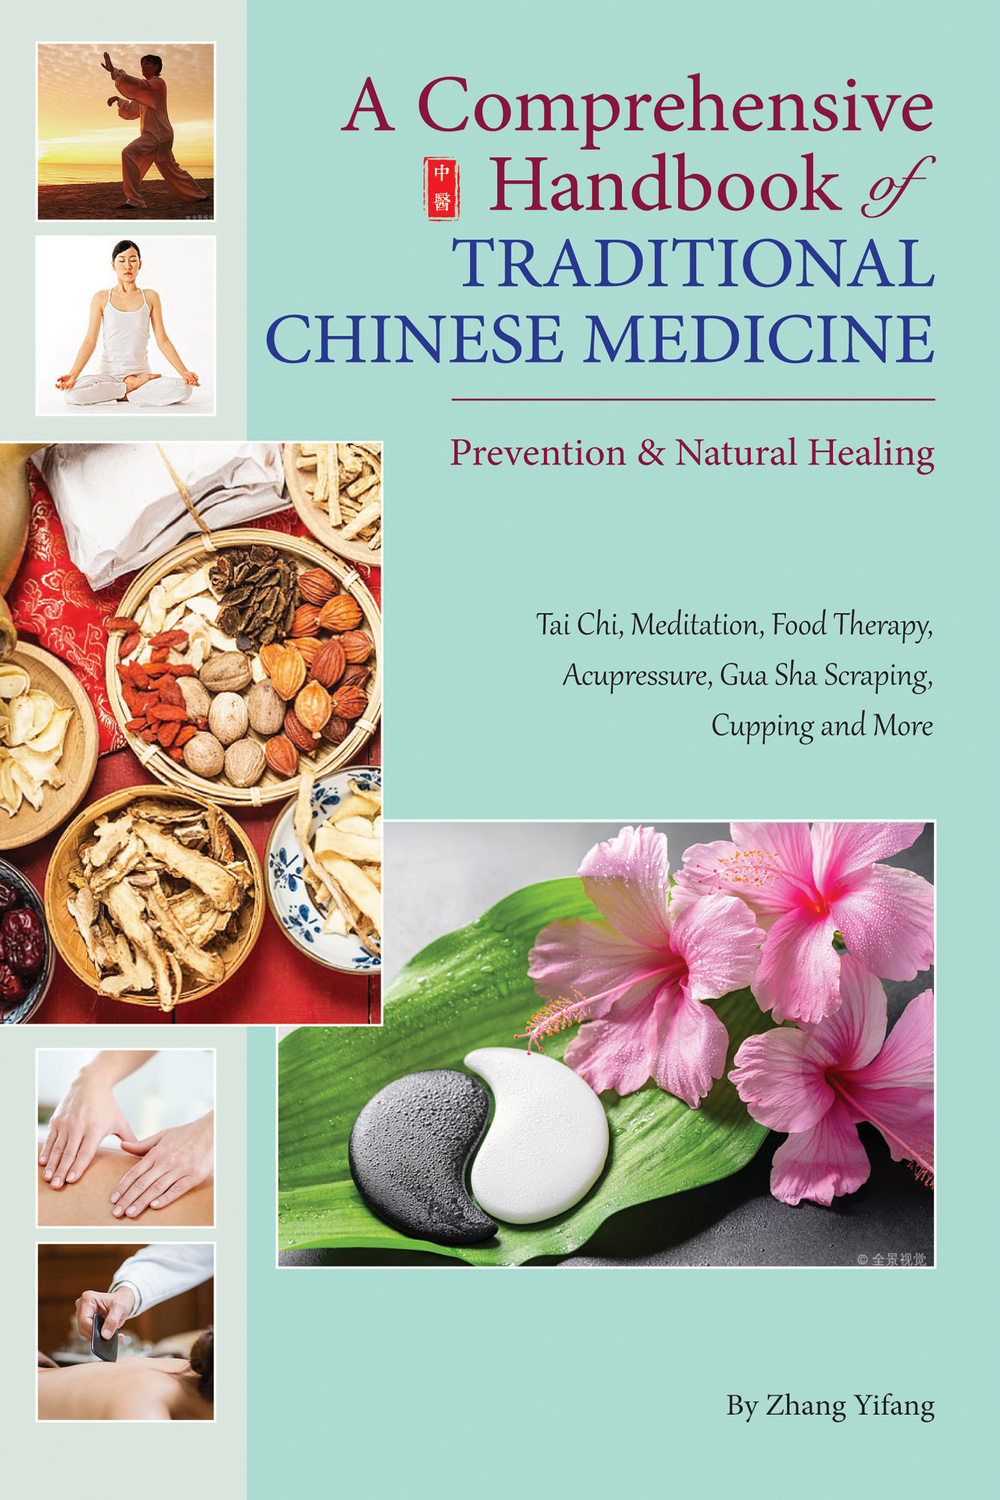 A Comprehensive Handbook of Traditional Chinese Medicine